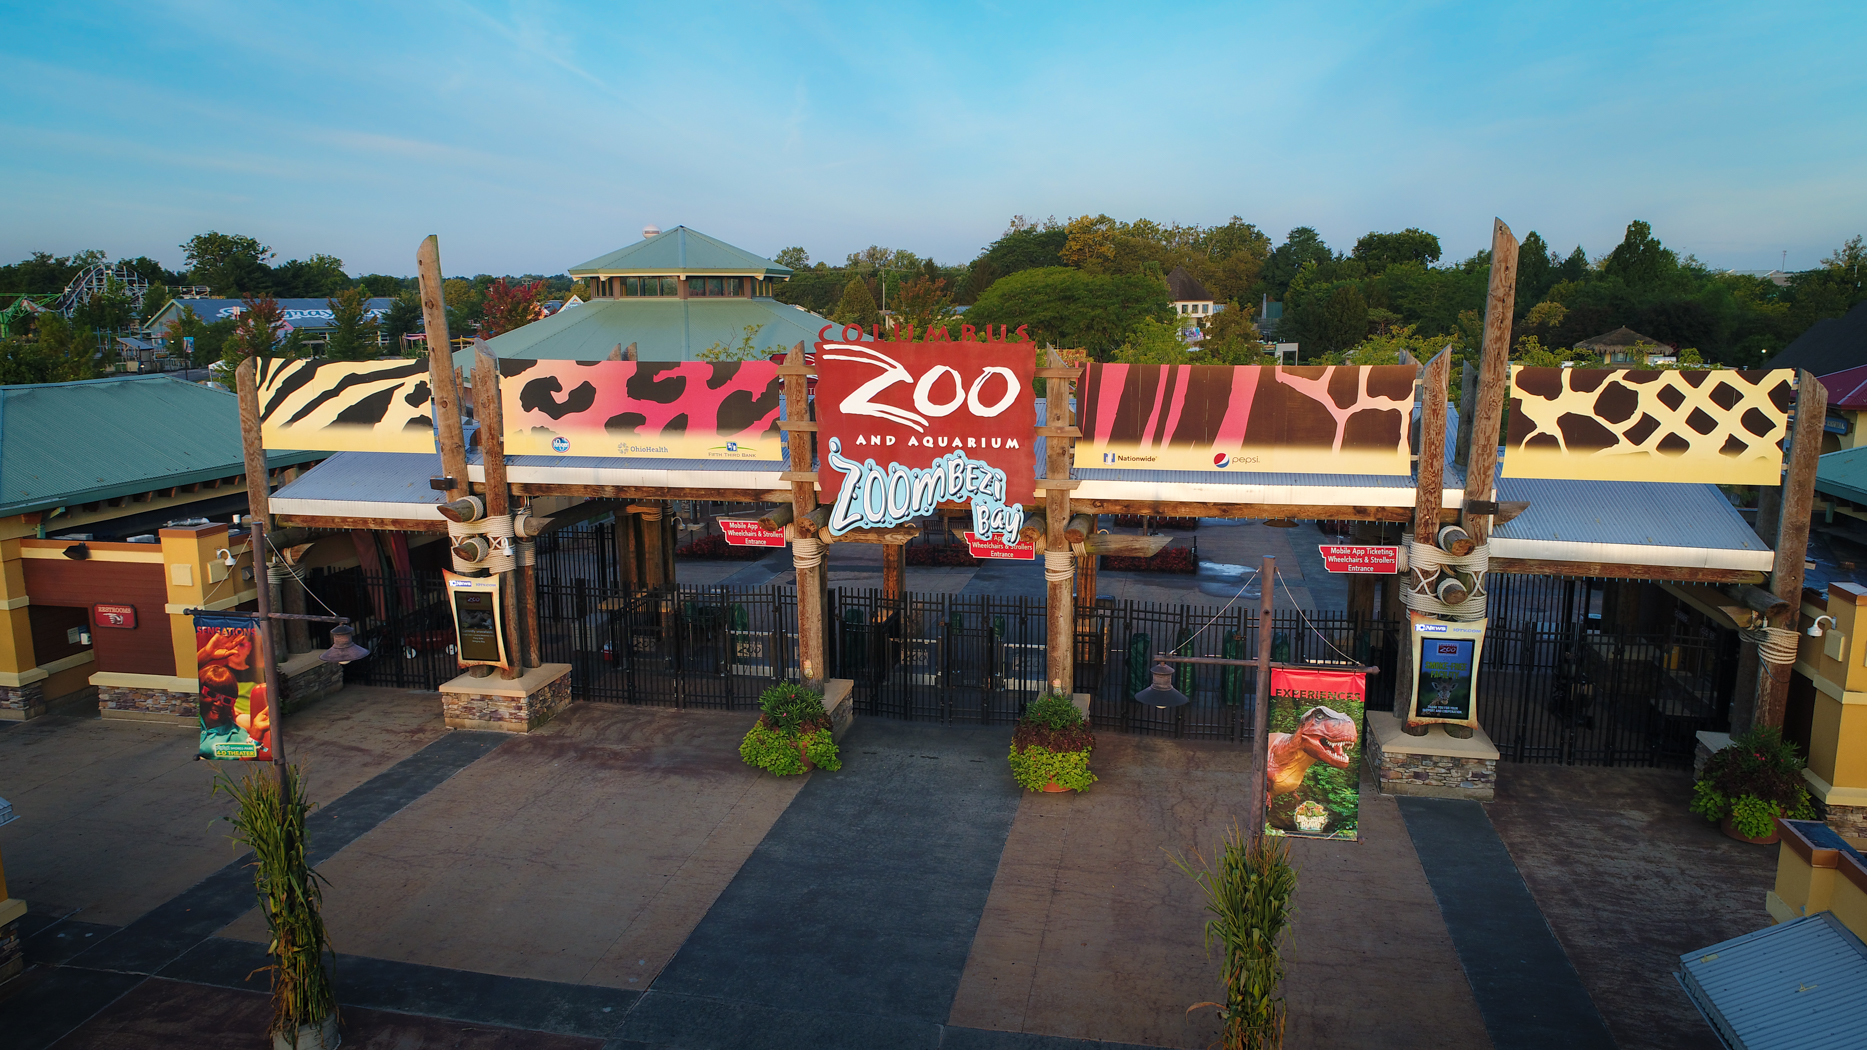 Entrance to Columbus Zoo and Aquarium and Zoombezi Bay adventure park